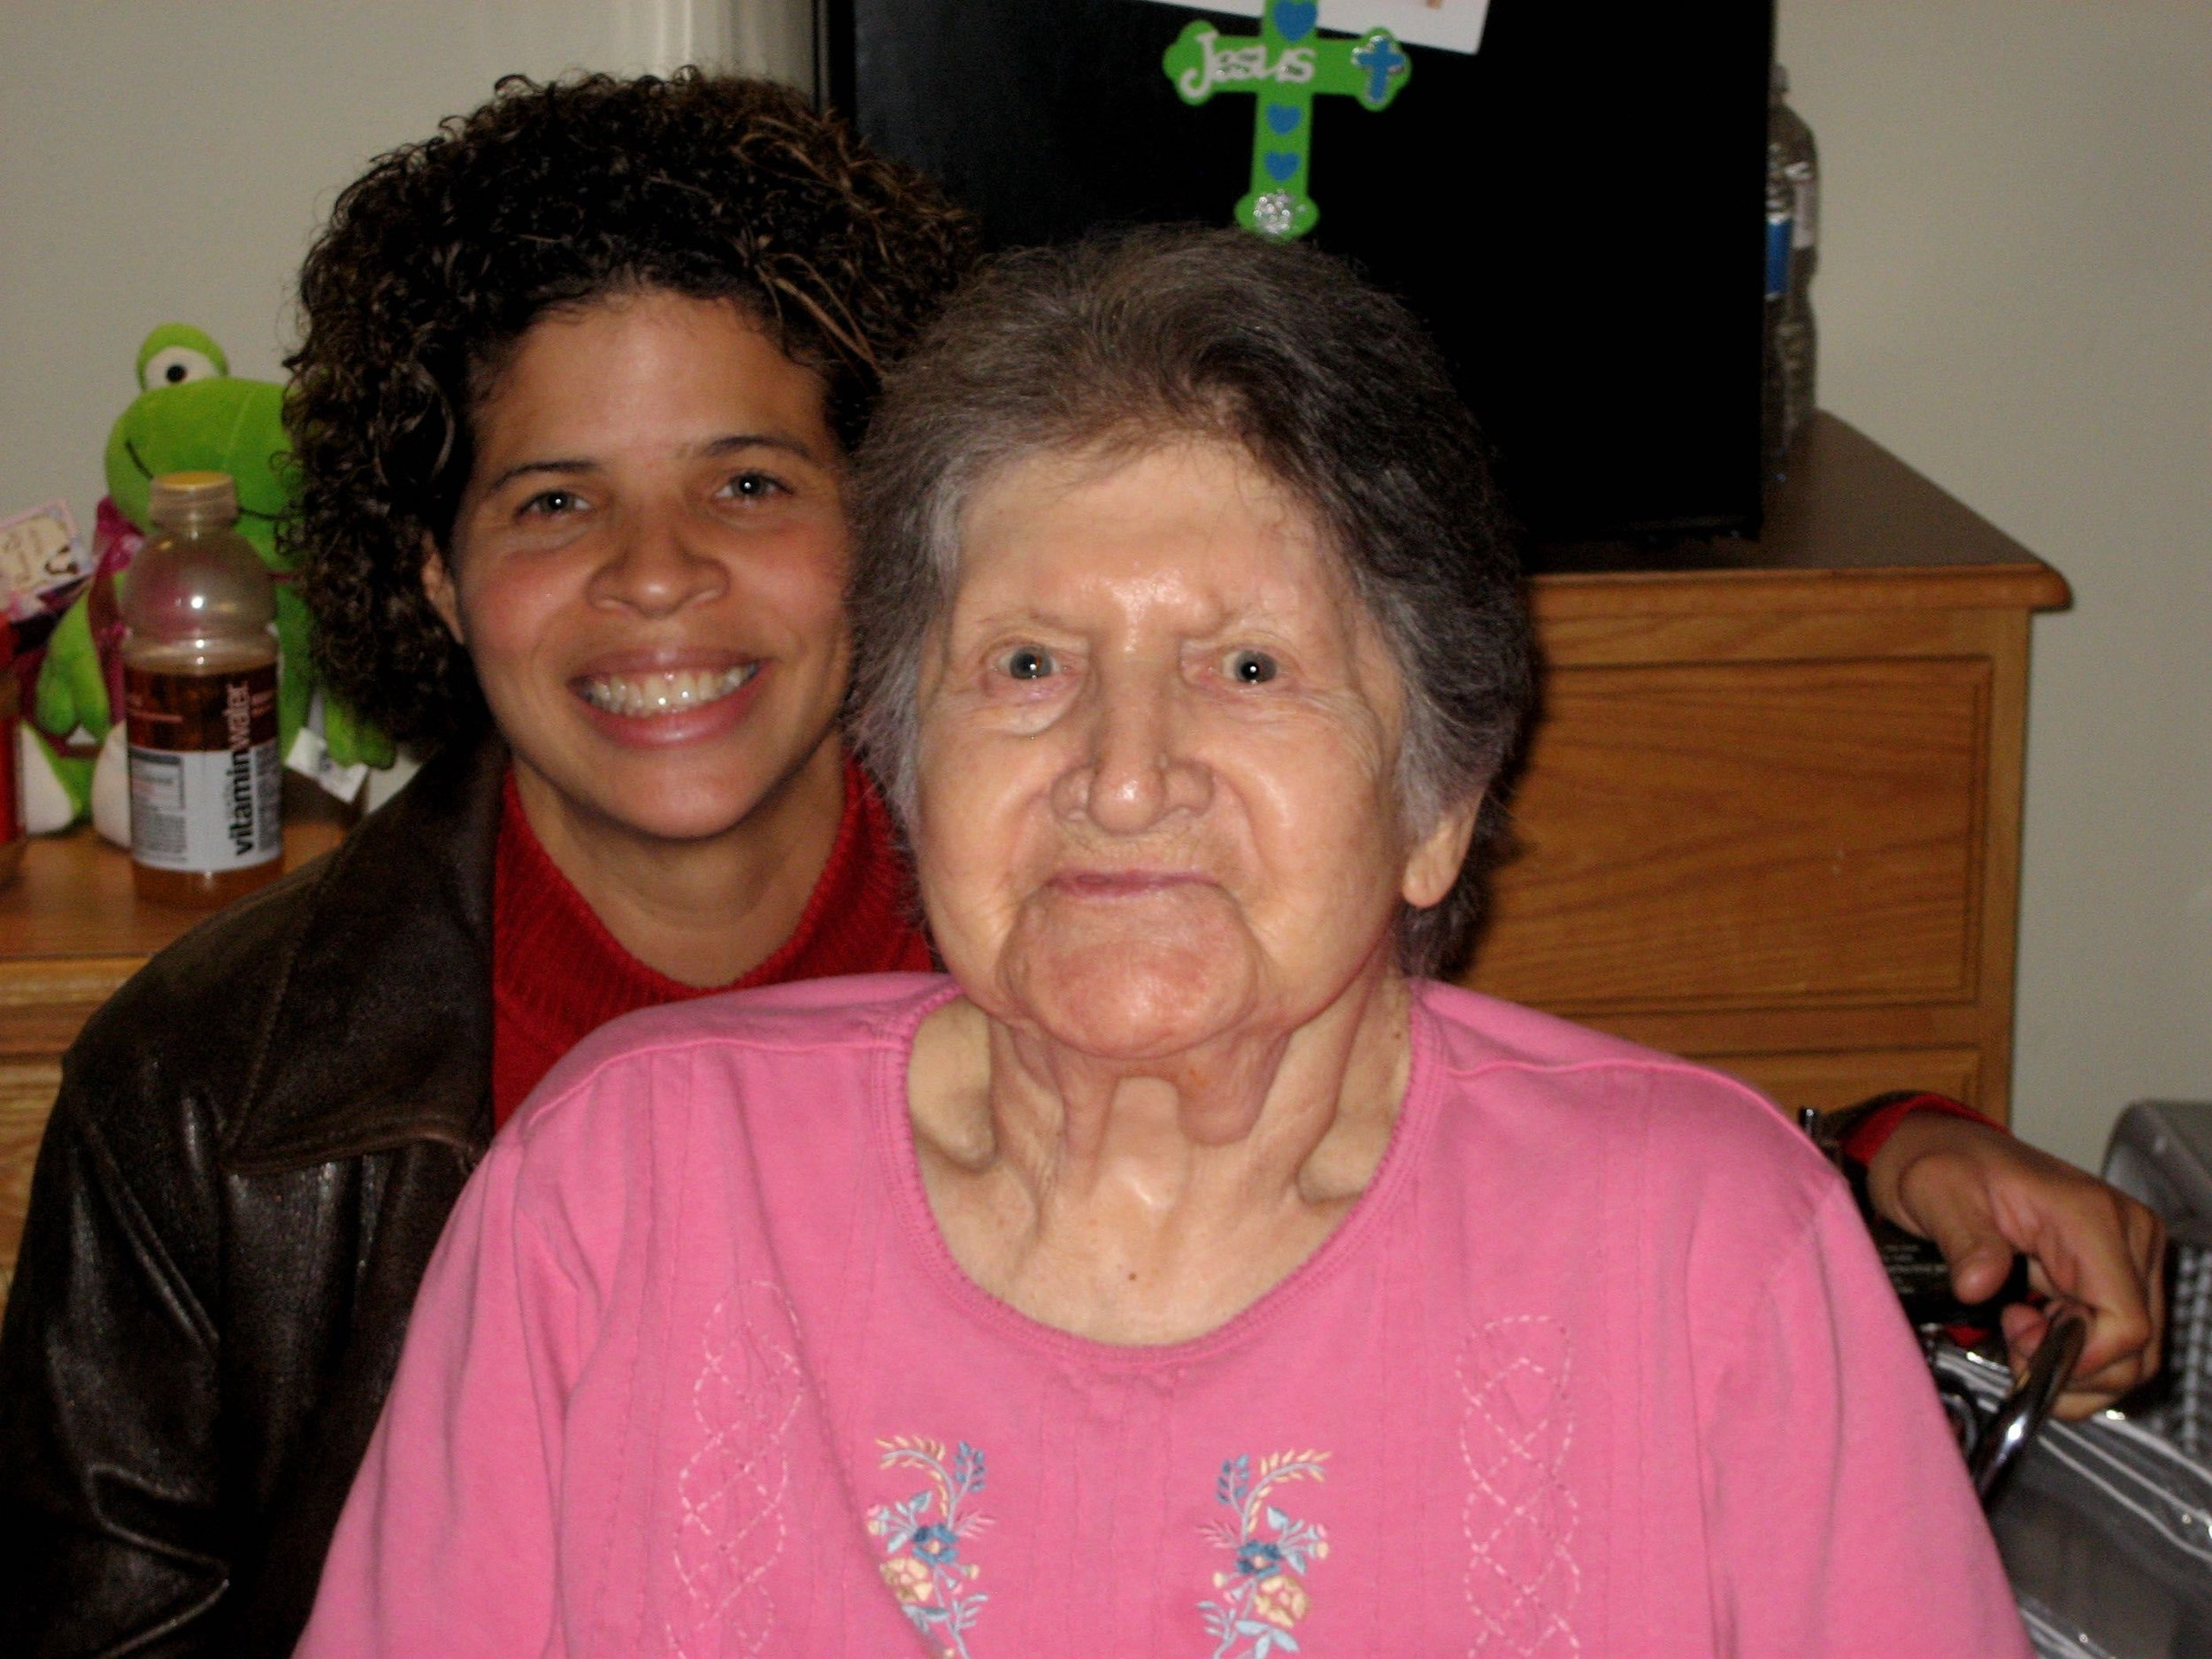 Jeffrey's sister, Shaina, with their mother, Betty Reddick.